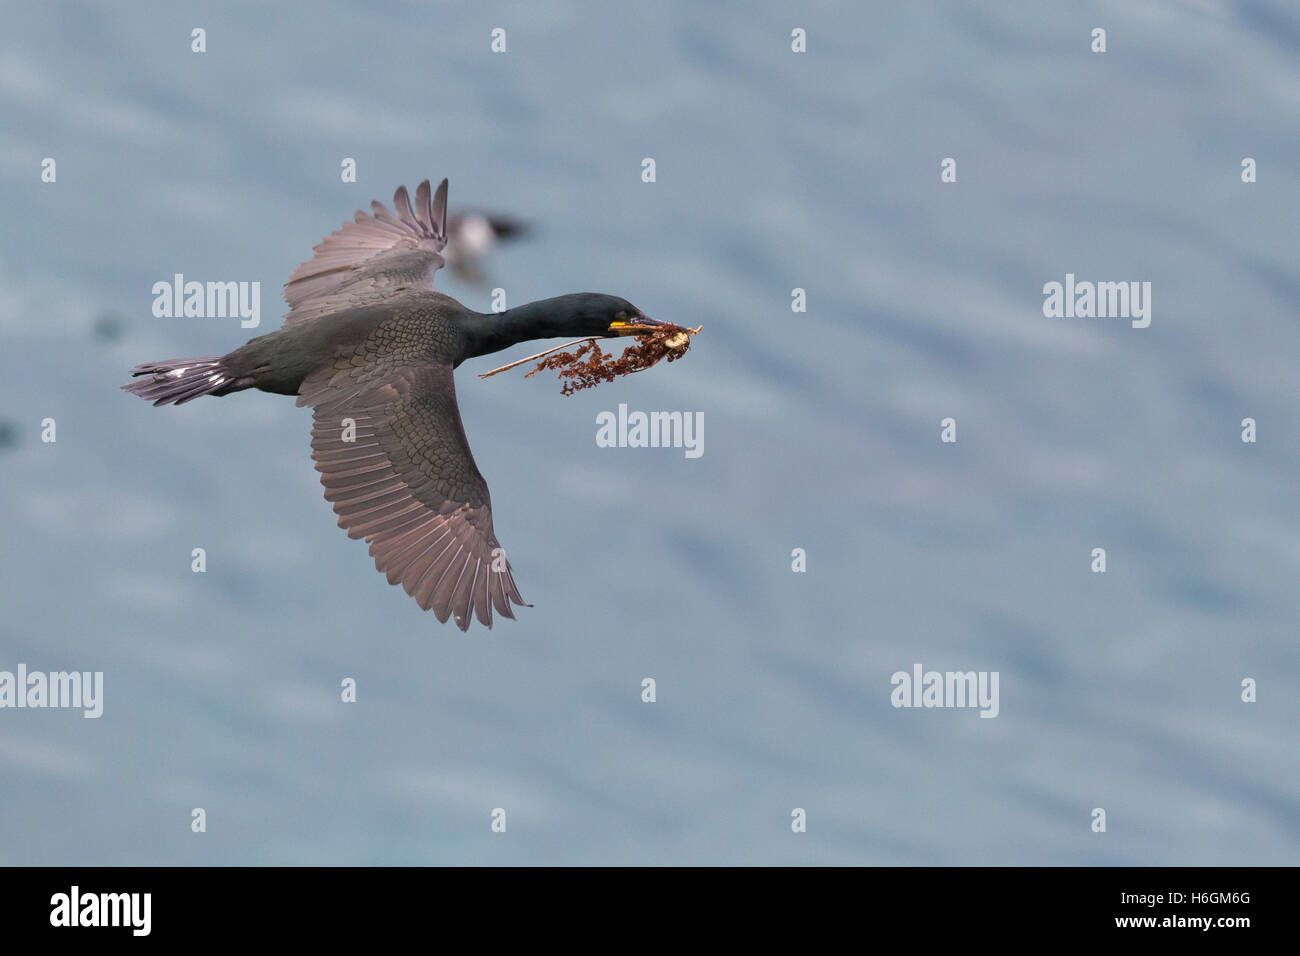 European Shag (Phalacrocorax aristotelis), adult in flight carrying material for the nest - Stock Image